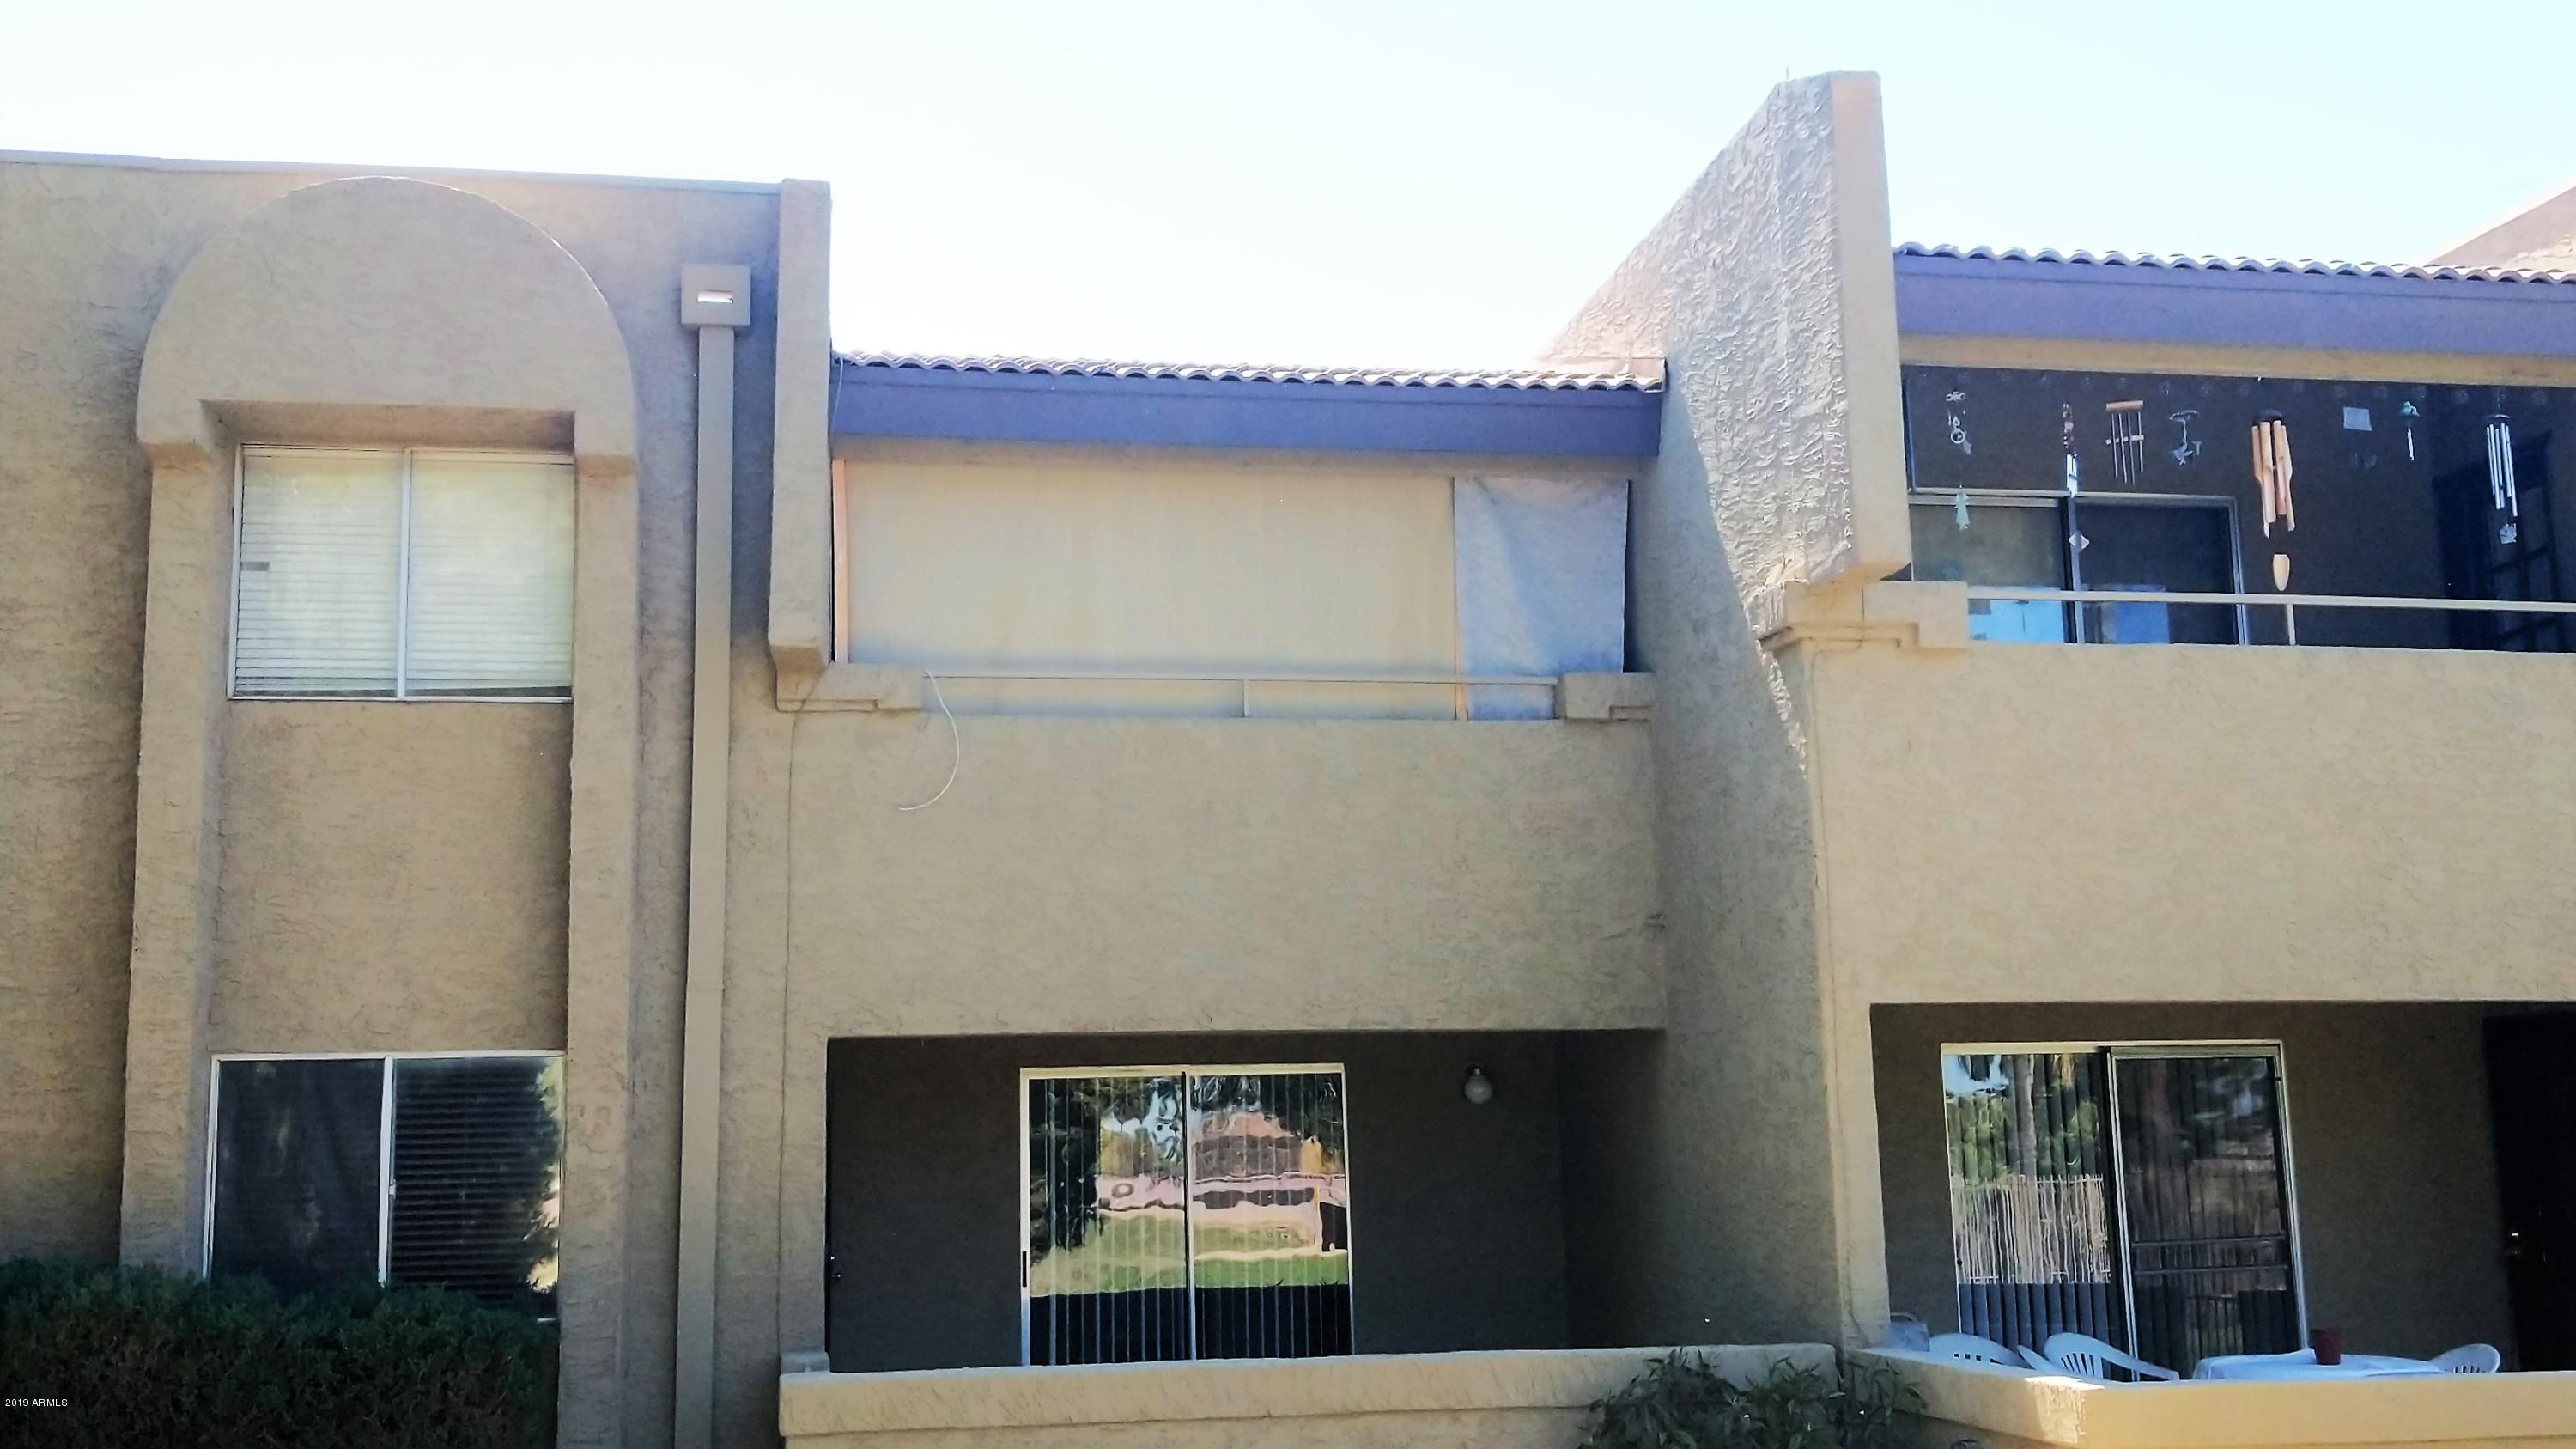 4050 E Cactus Road, #209, Phoenix, AZ 85032 - SOLD LISTING, MLS # 5897945    Better Homes and Gardens BloomTree Realty